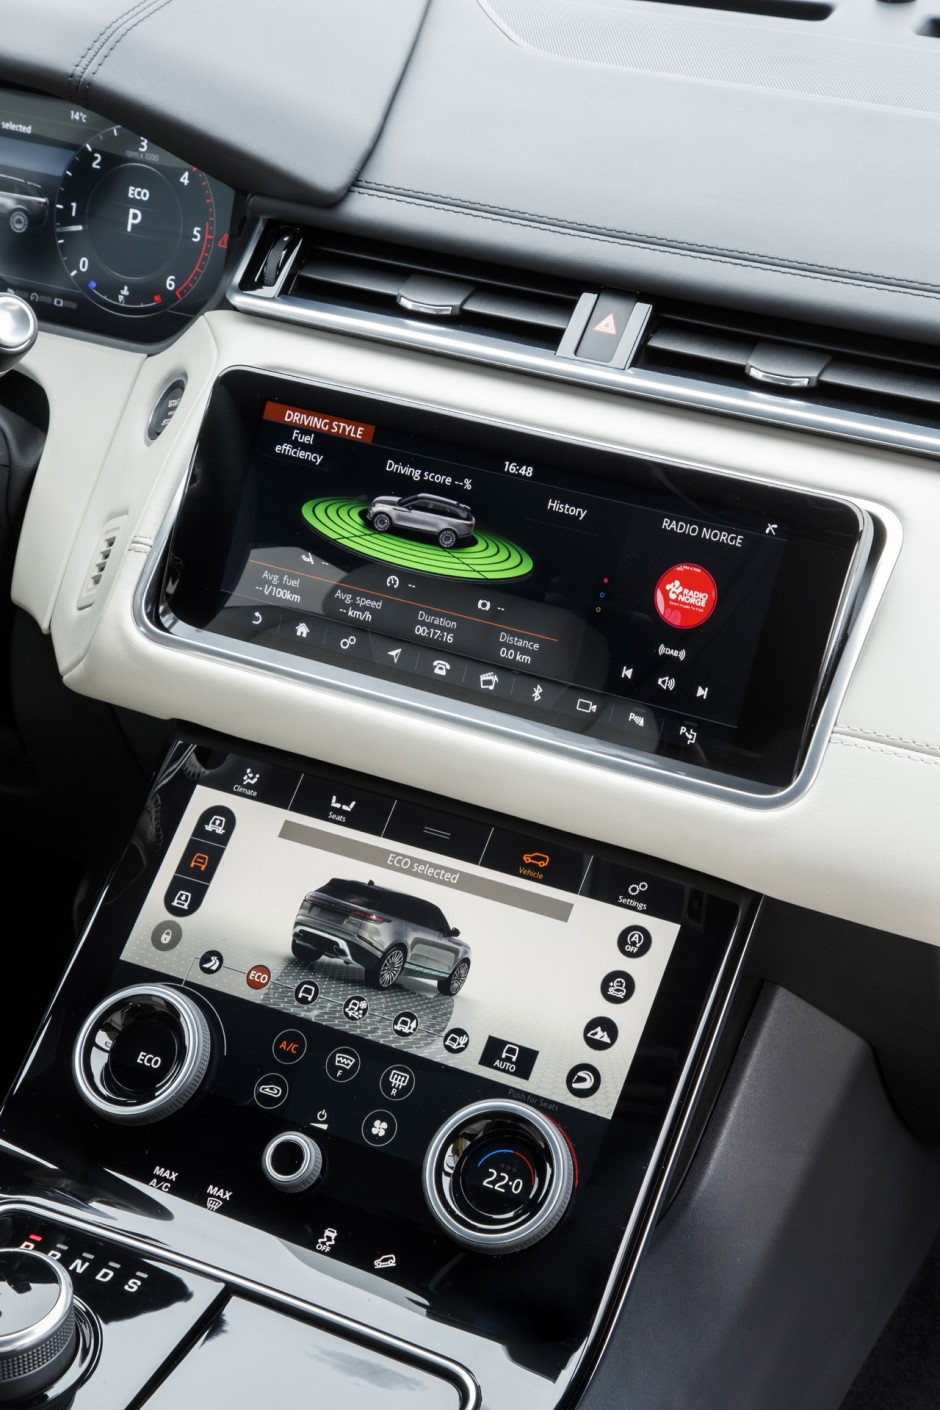 essai range rover velar notre avis sur le diesel 240 ch photo 25 l 39 argus. Black Bedroom Furniture Sets. Home Design Ideas